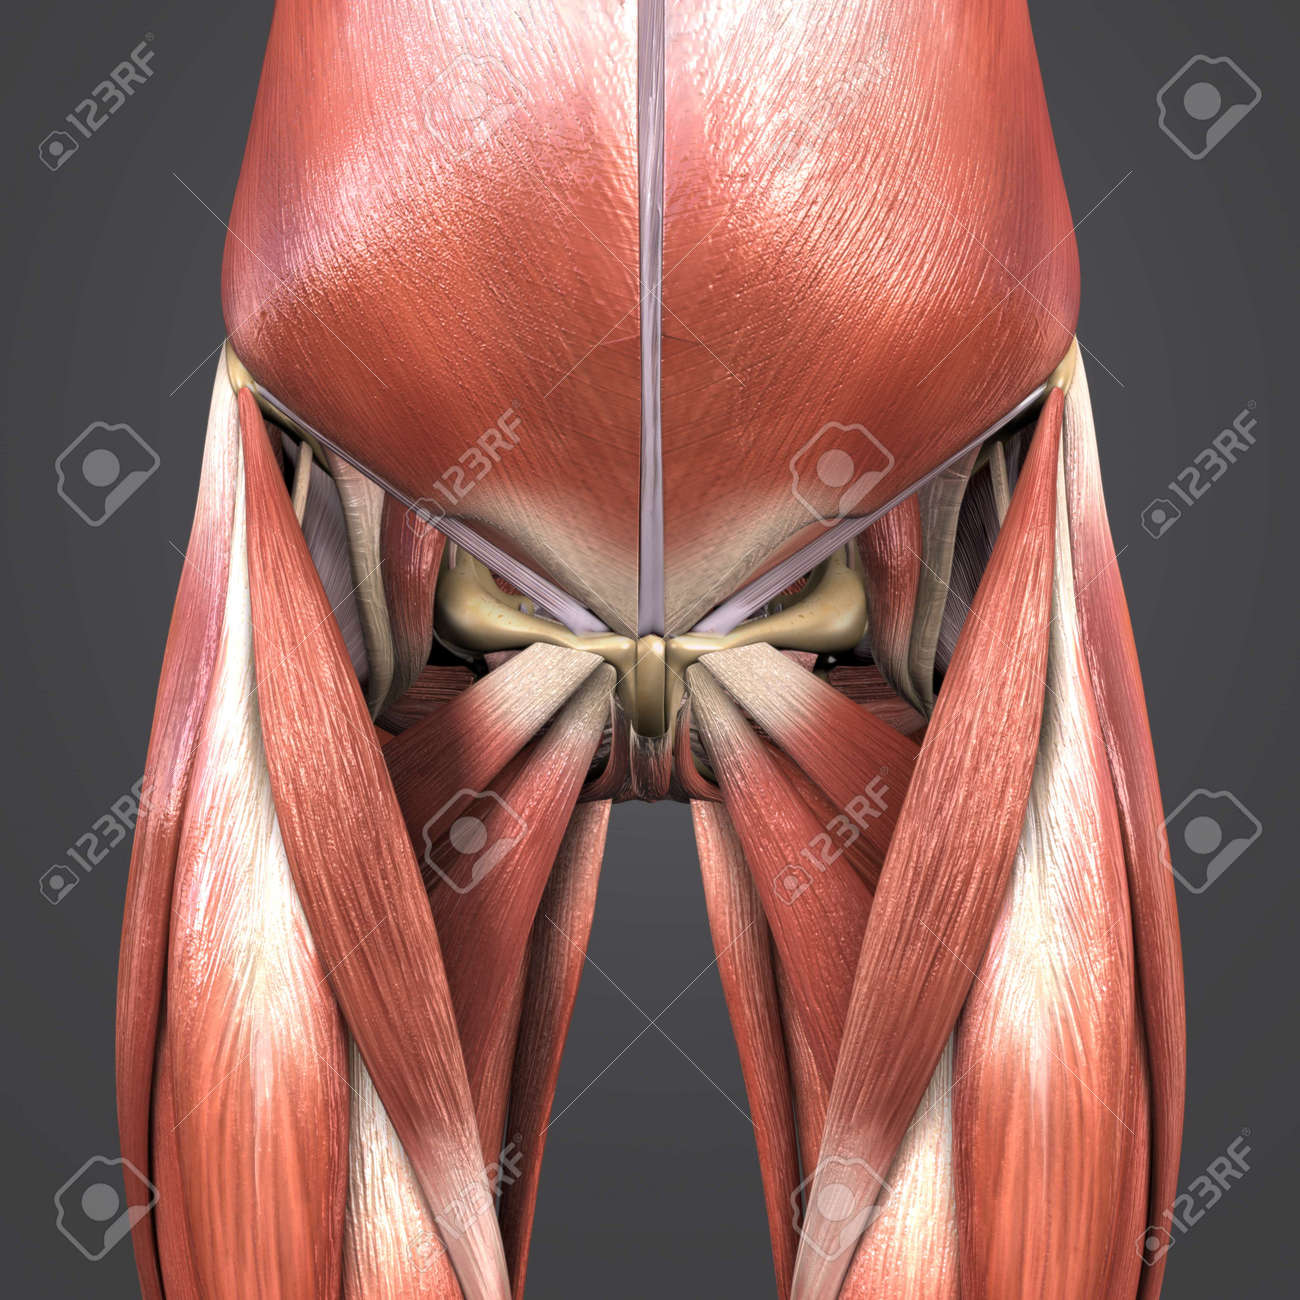 Muscles And Bones Of Hip And Thigh Stock Photo Picture And Royalty